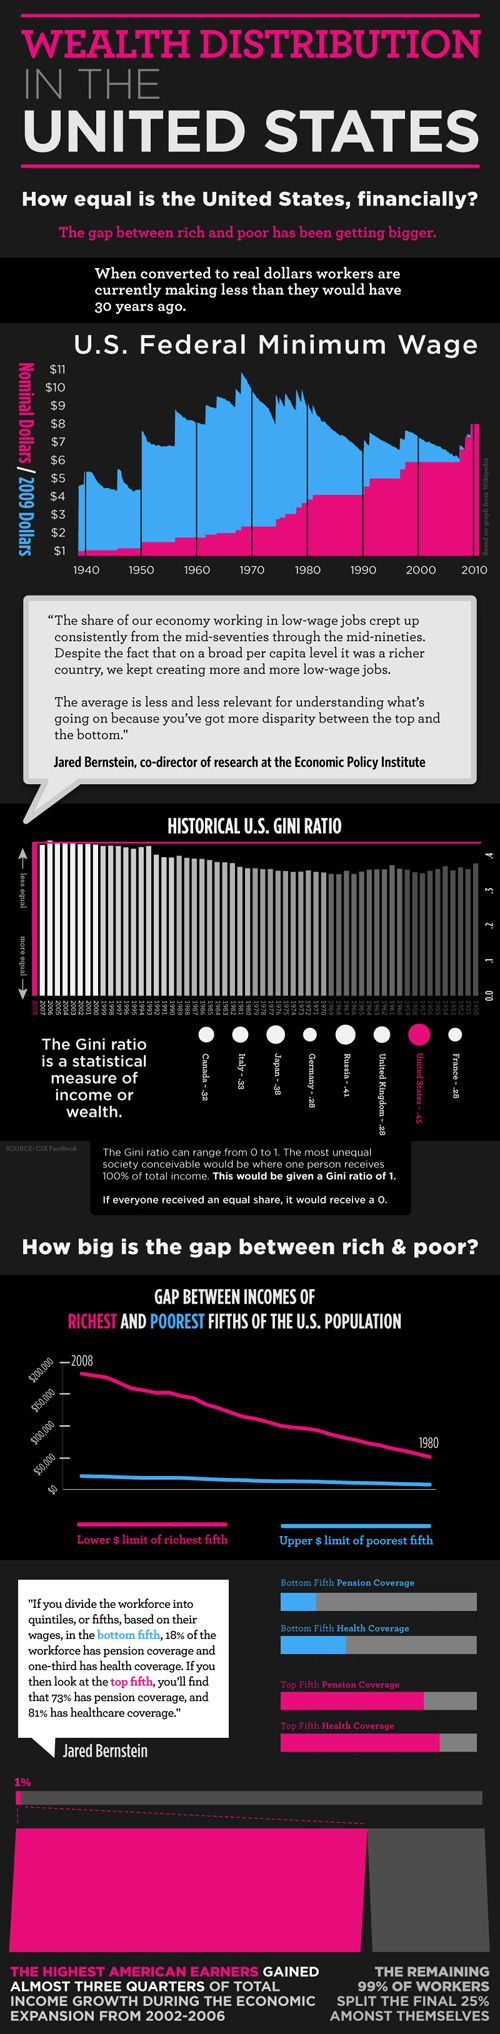 Wealth Distribution in USA